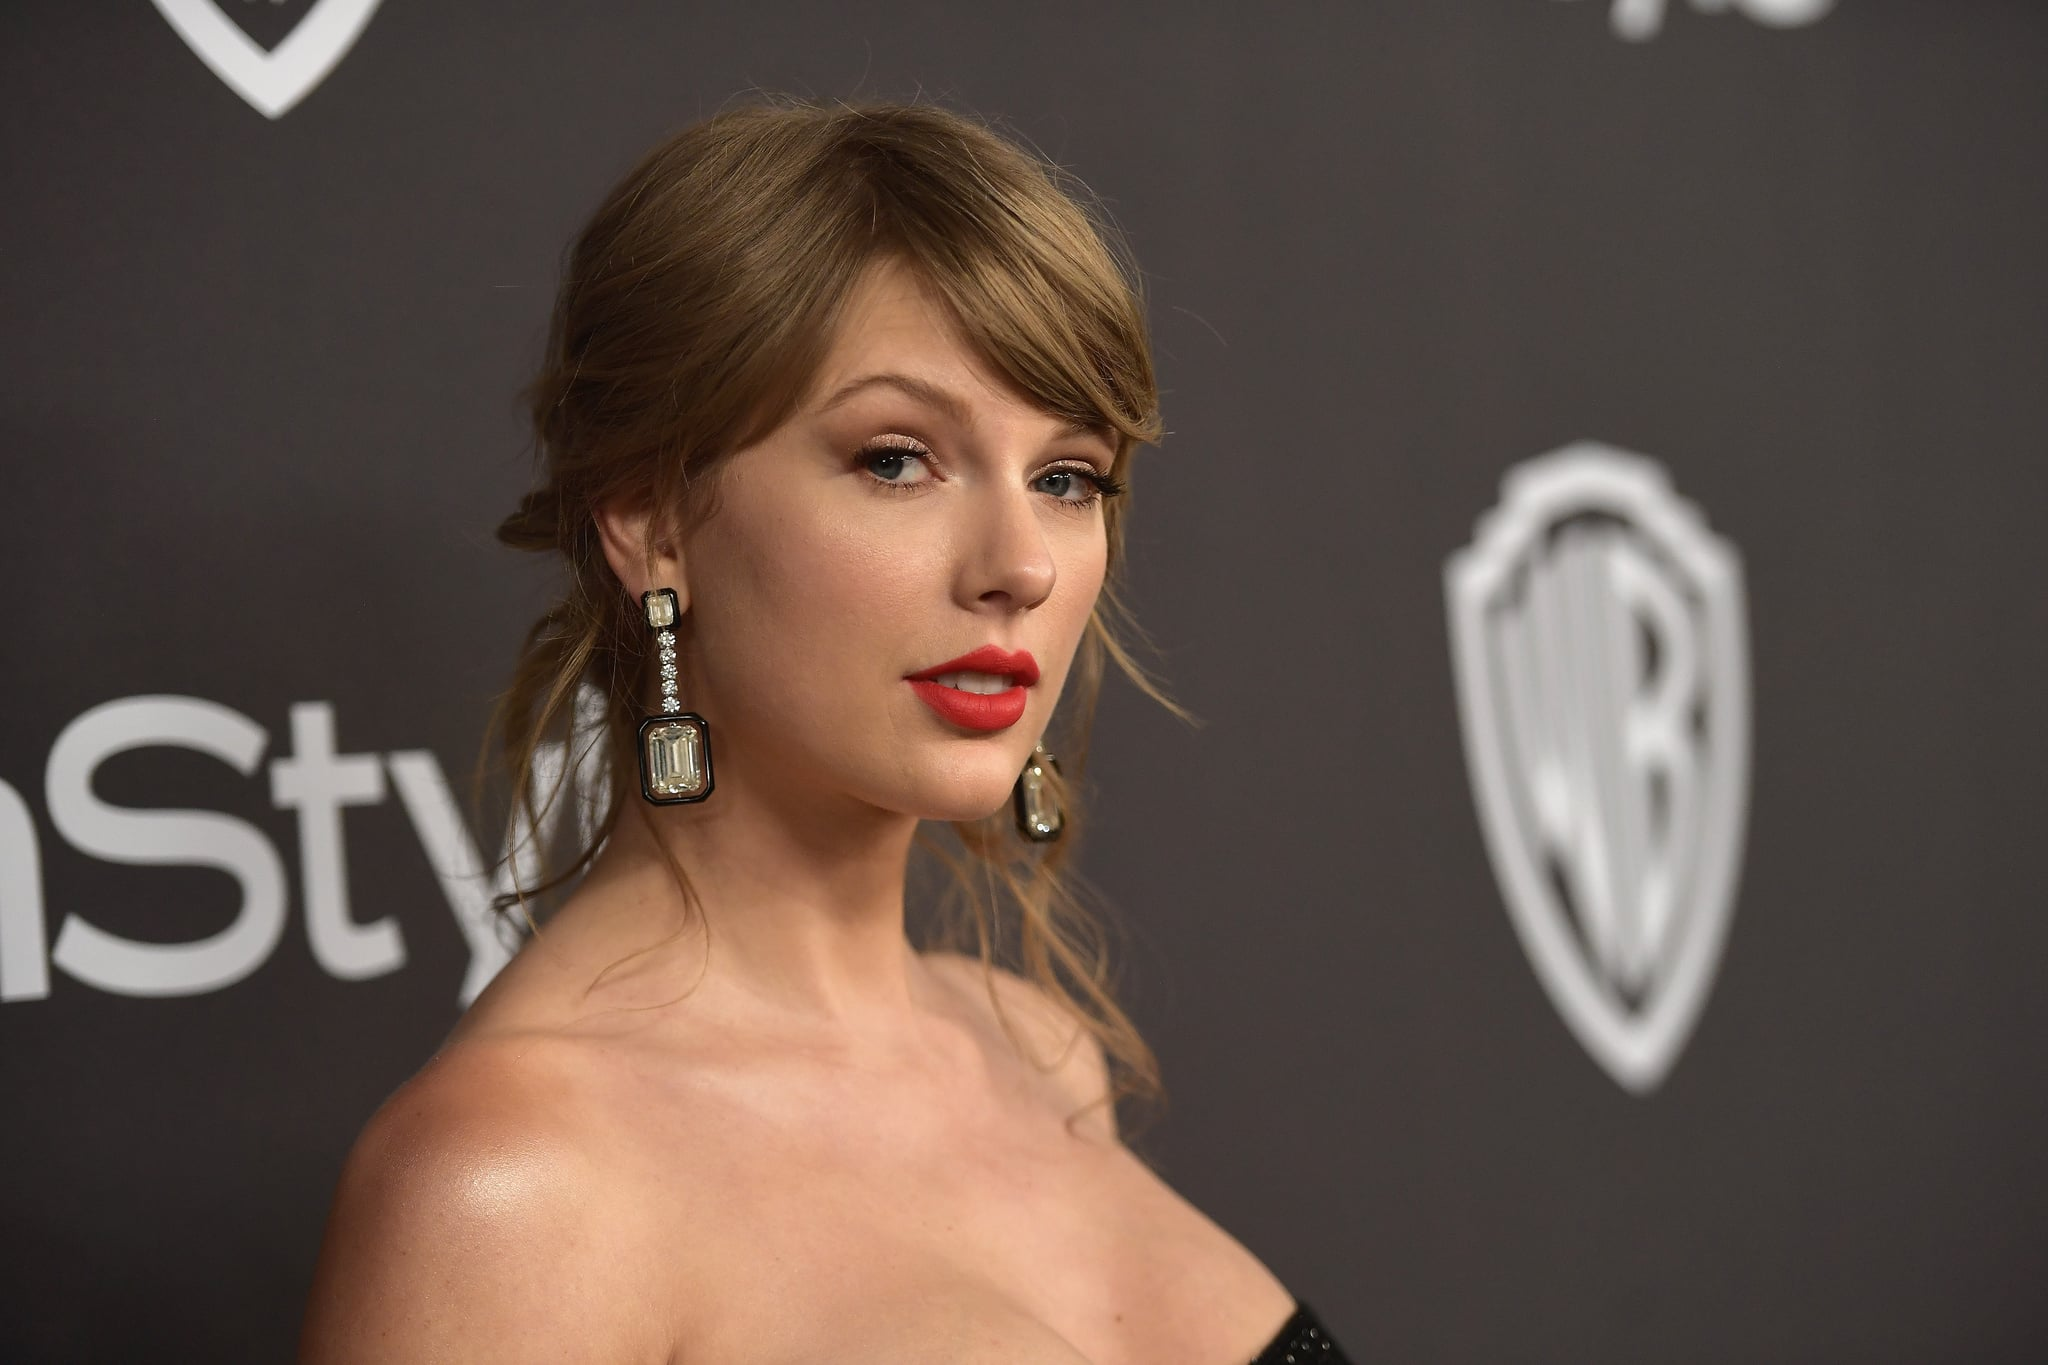 BEVERLY HILLS, CA - JANUARY 06: Taylor Swift attends the 2019 InStyle and Warner Bros. 76th Annual Golden Globe Awards Post-Party at The Beverly Hilton Hotel on January 6, 2019 in Beverly Hills, California.  (Photo by Matt Winkelmeyer/Getty Images for InStyle)